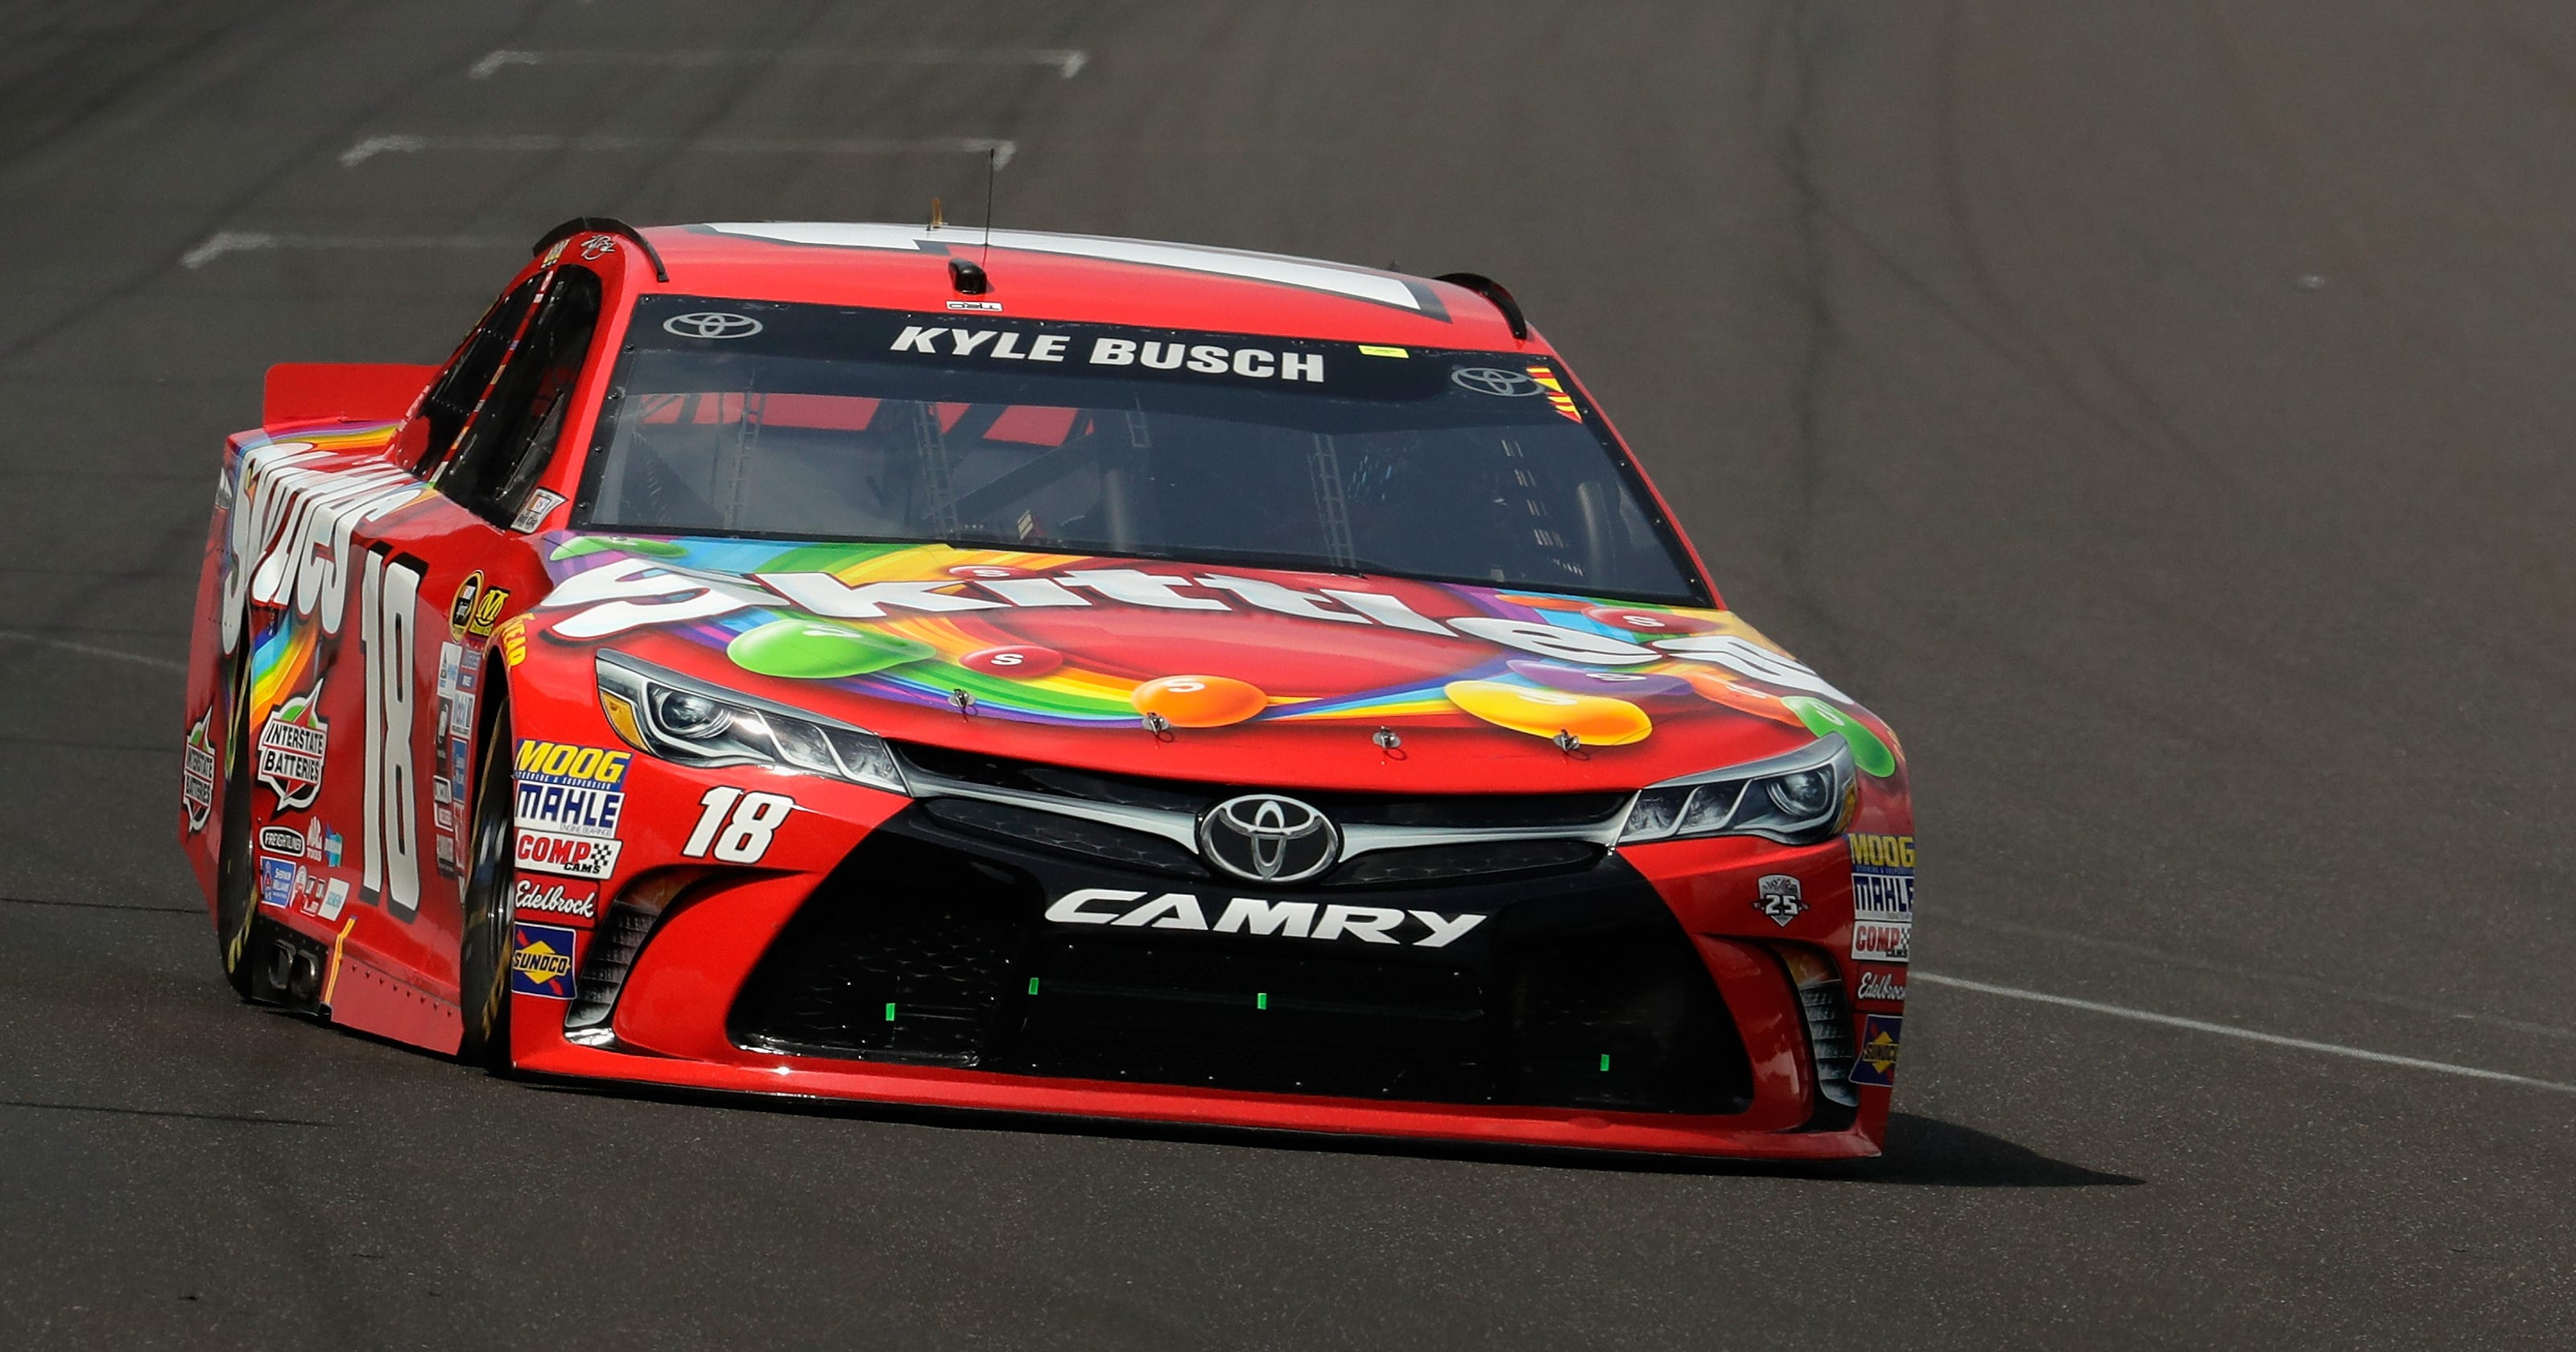 c3f5654e019 Kyle Busch wins Brickyard 400 for second year in a row